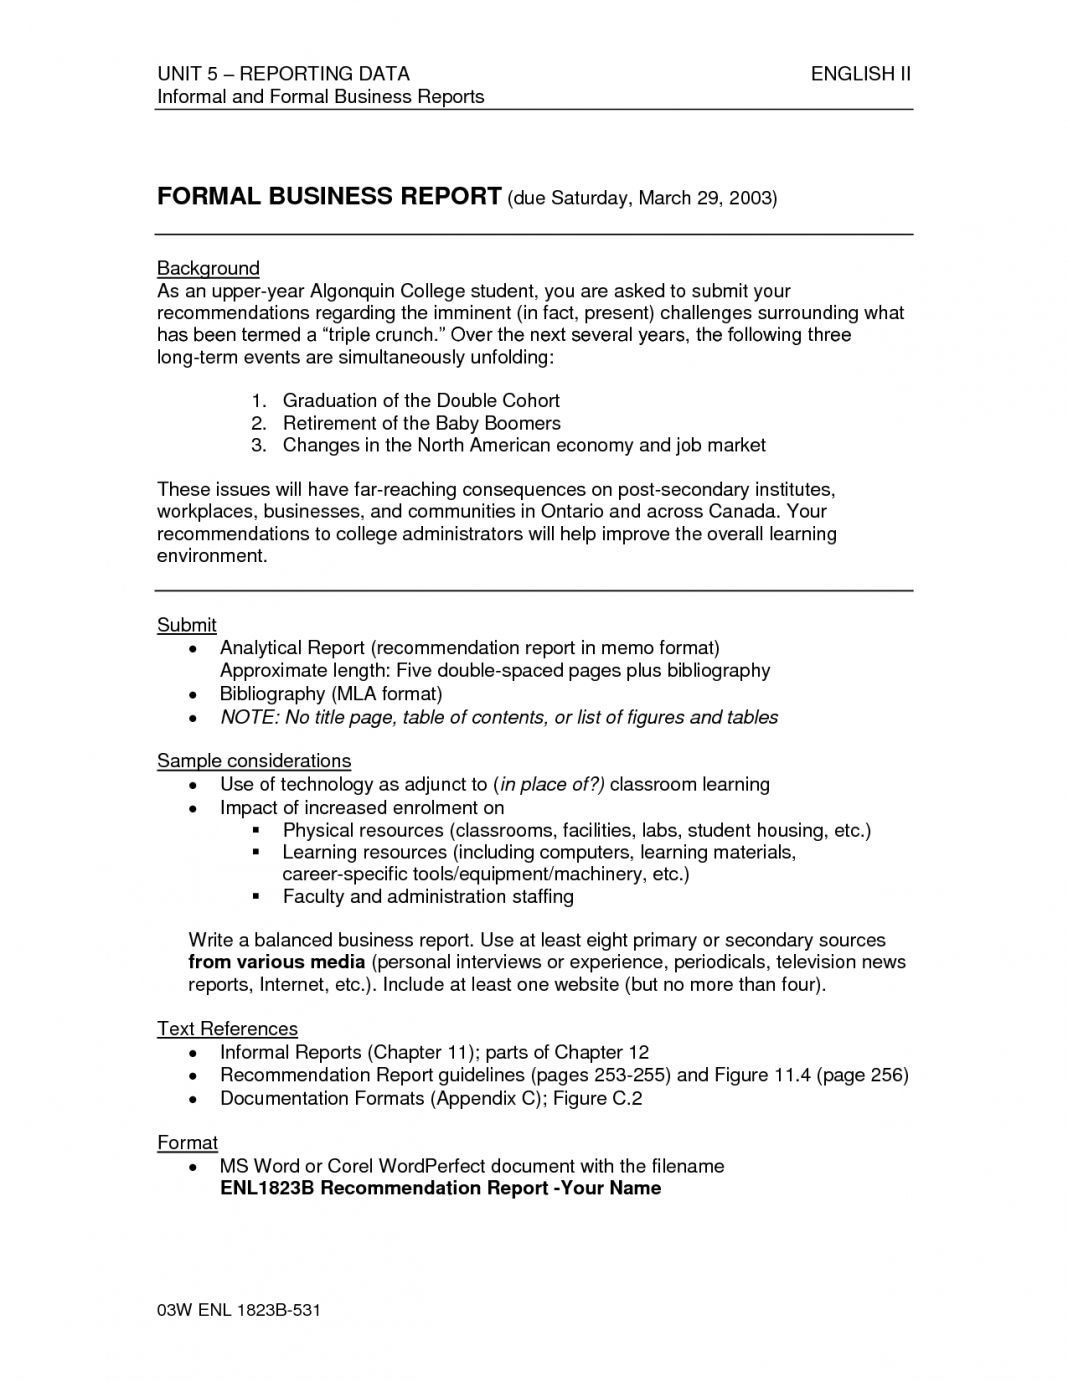 Write formal business report